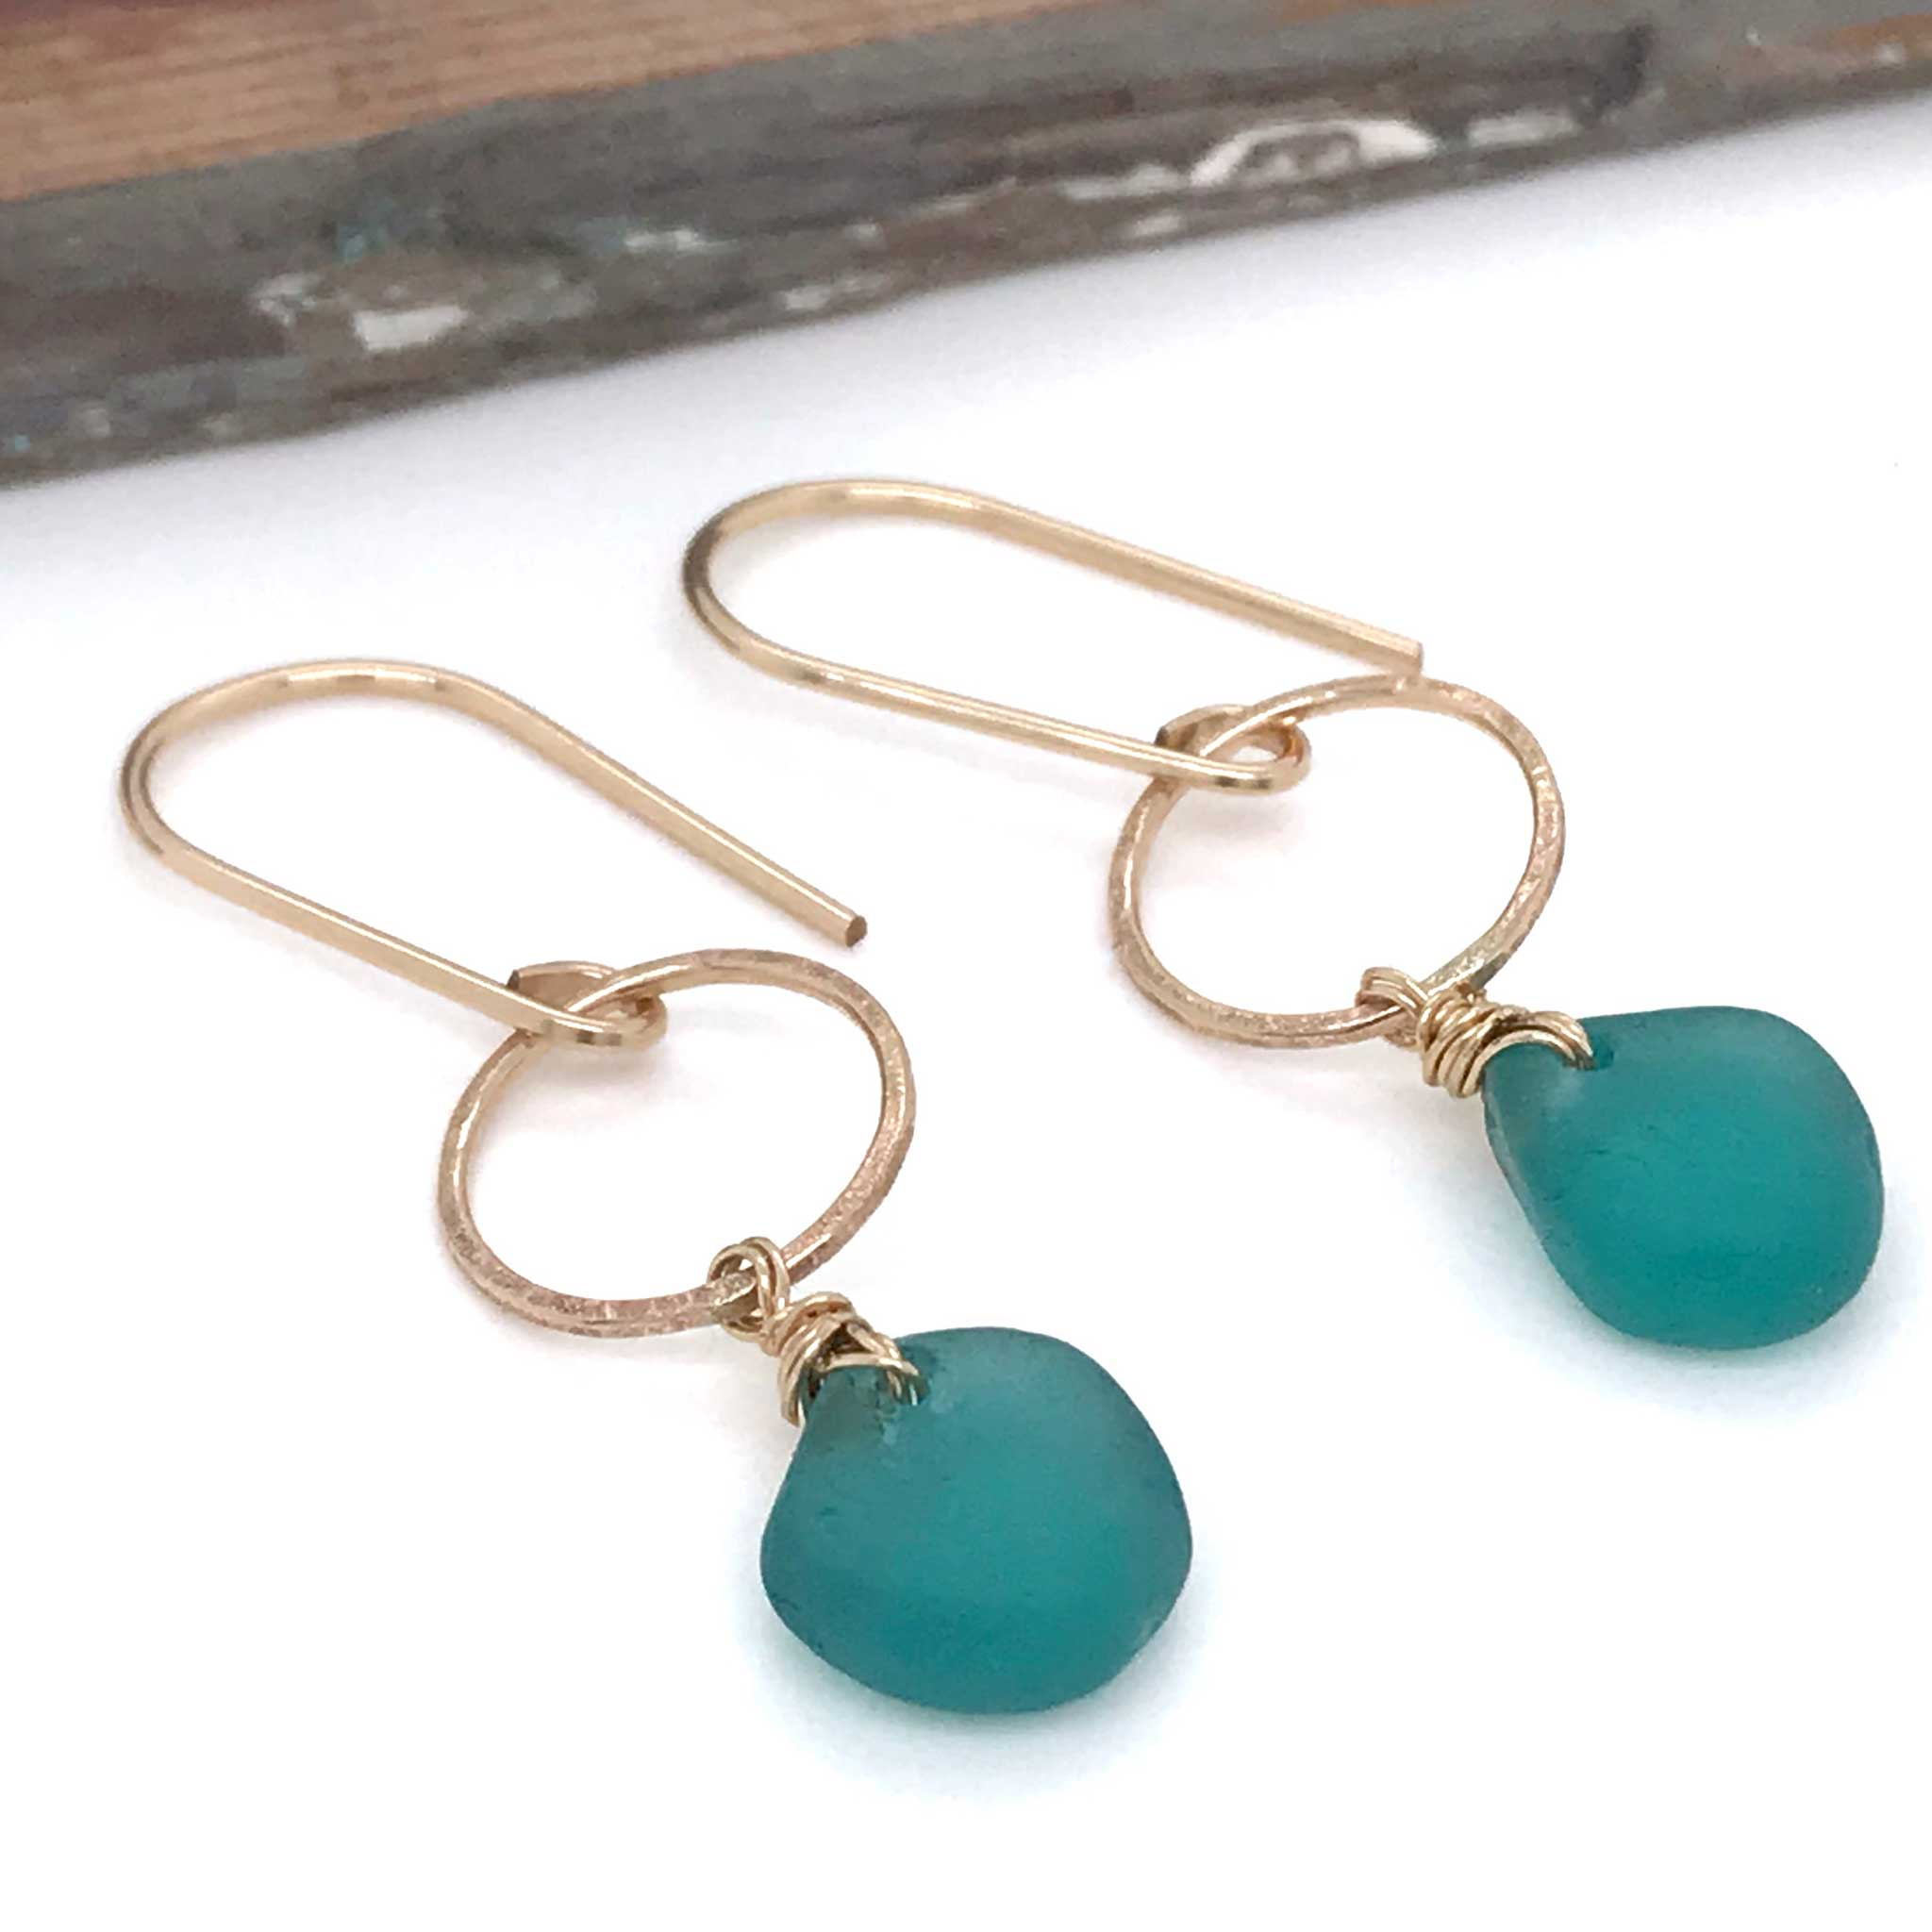 teal green seaglass earrings gold open circle design kriket broadhurst jewellery